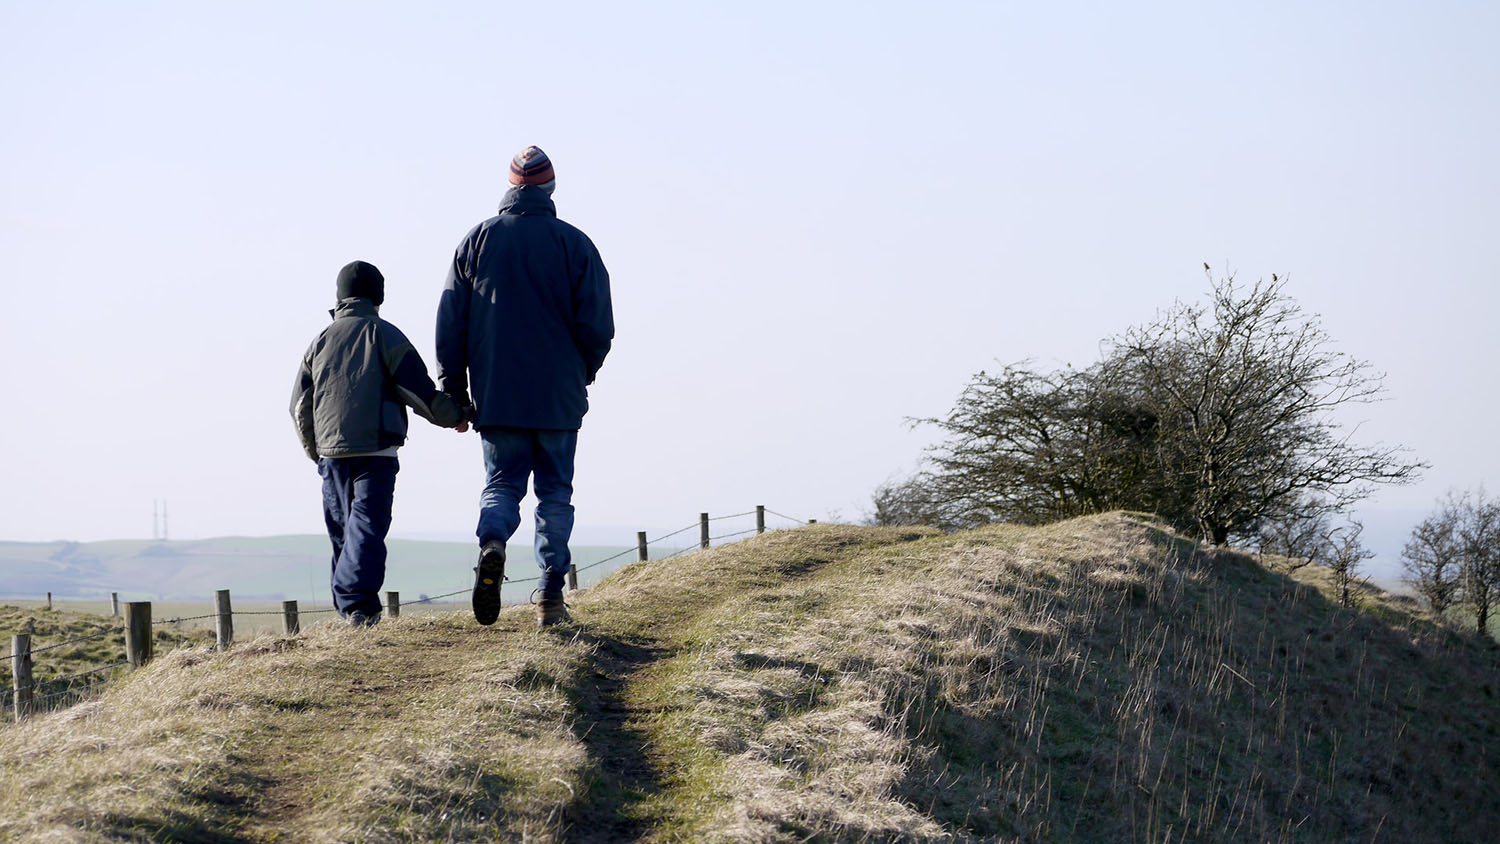 man and boy in silhouette, going for a walk together